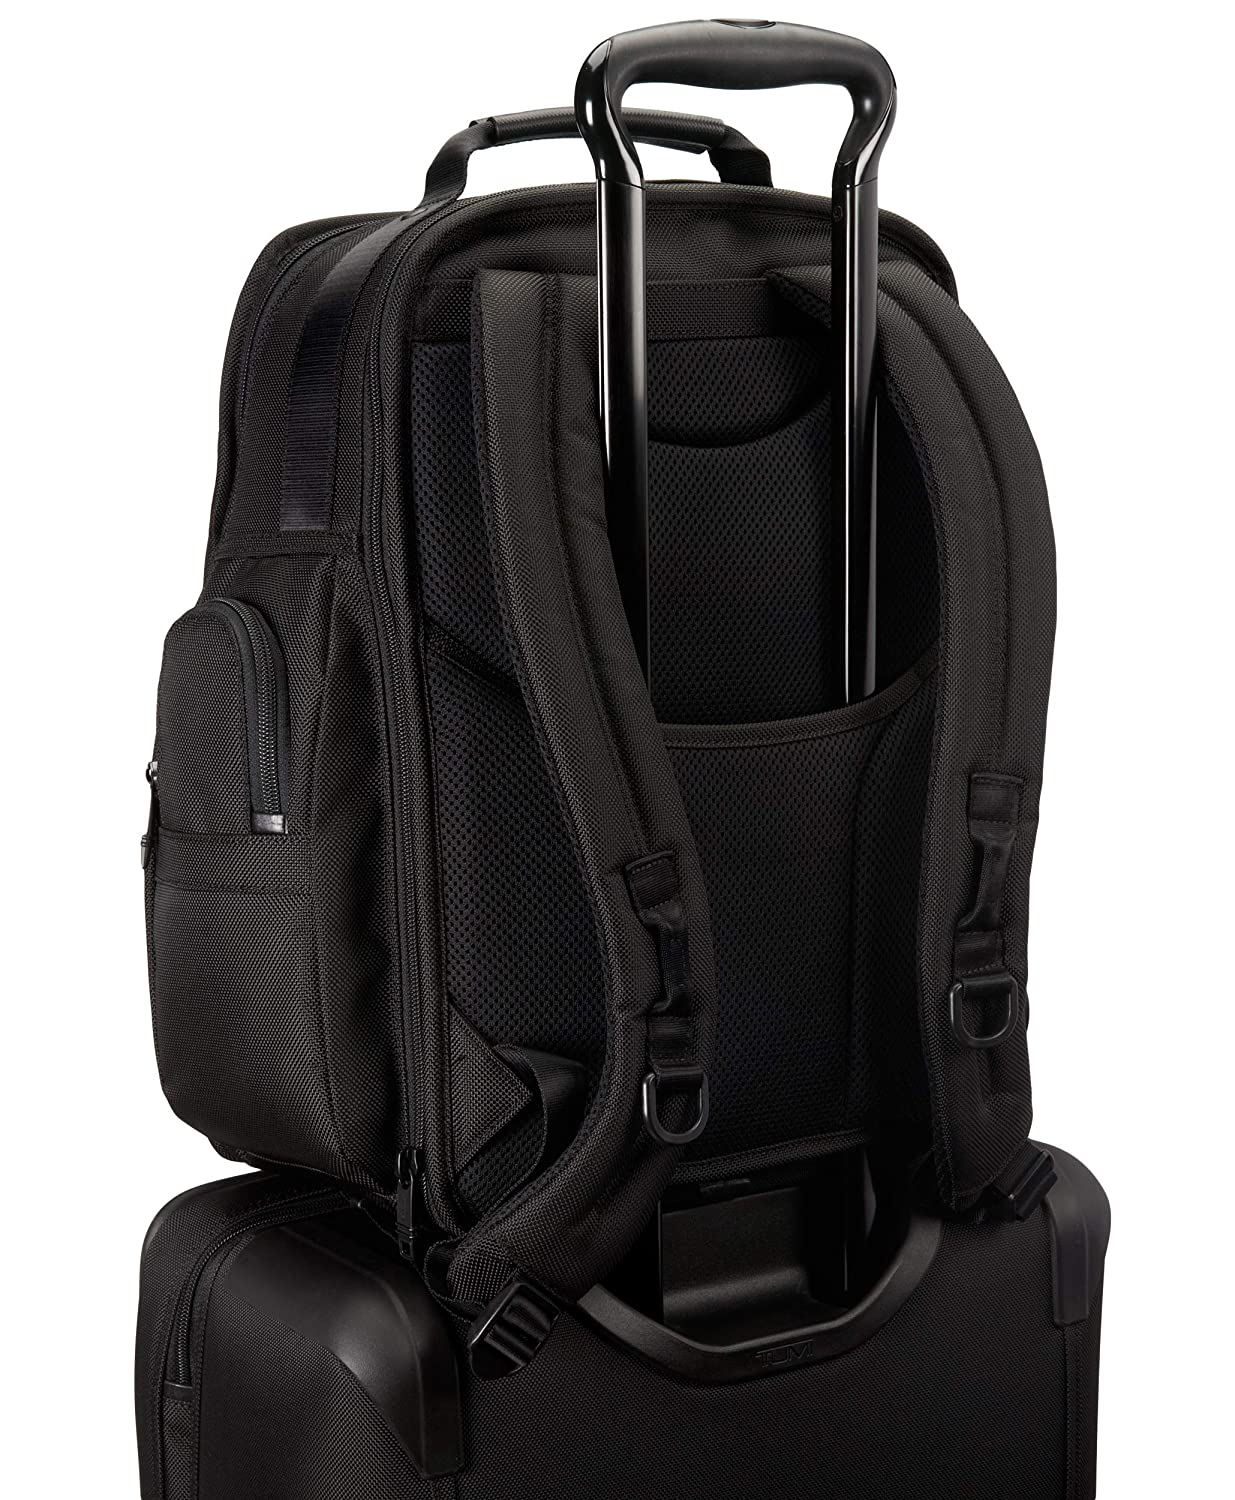 7929ab6b0 Amazon.com: TUMI - Alpha 2 T-Pass Business Class Laptop Brief Pack - 15  Inch Computer Backpack for Men and Women - Black: NARP'S